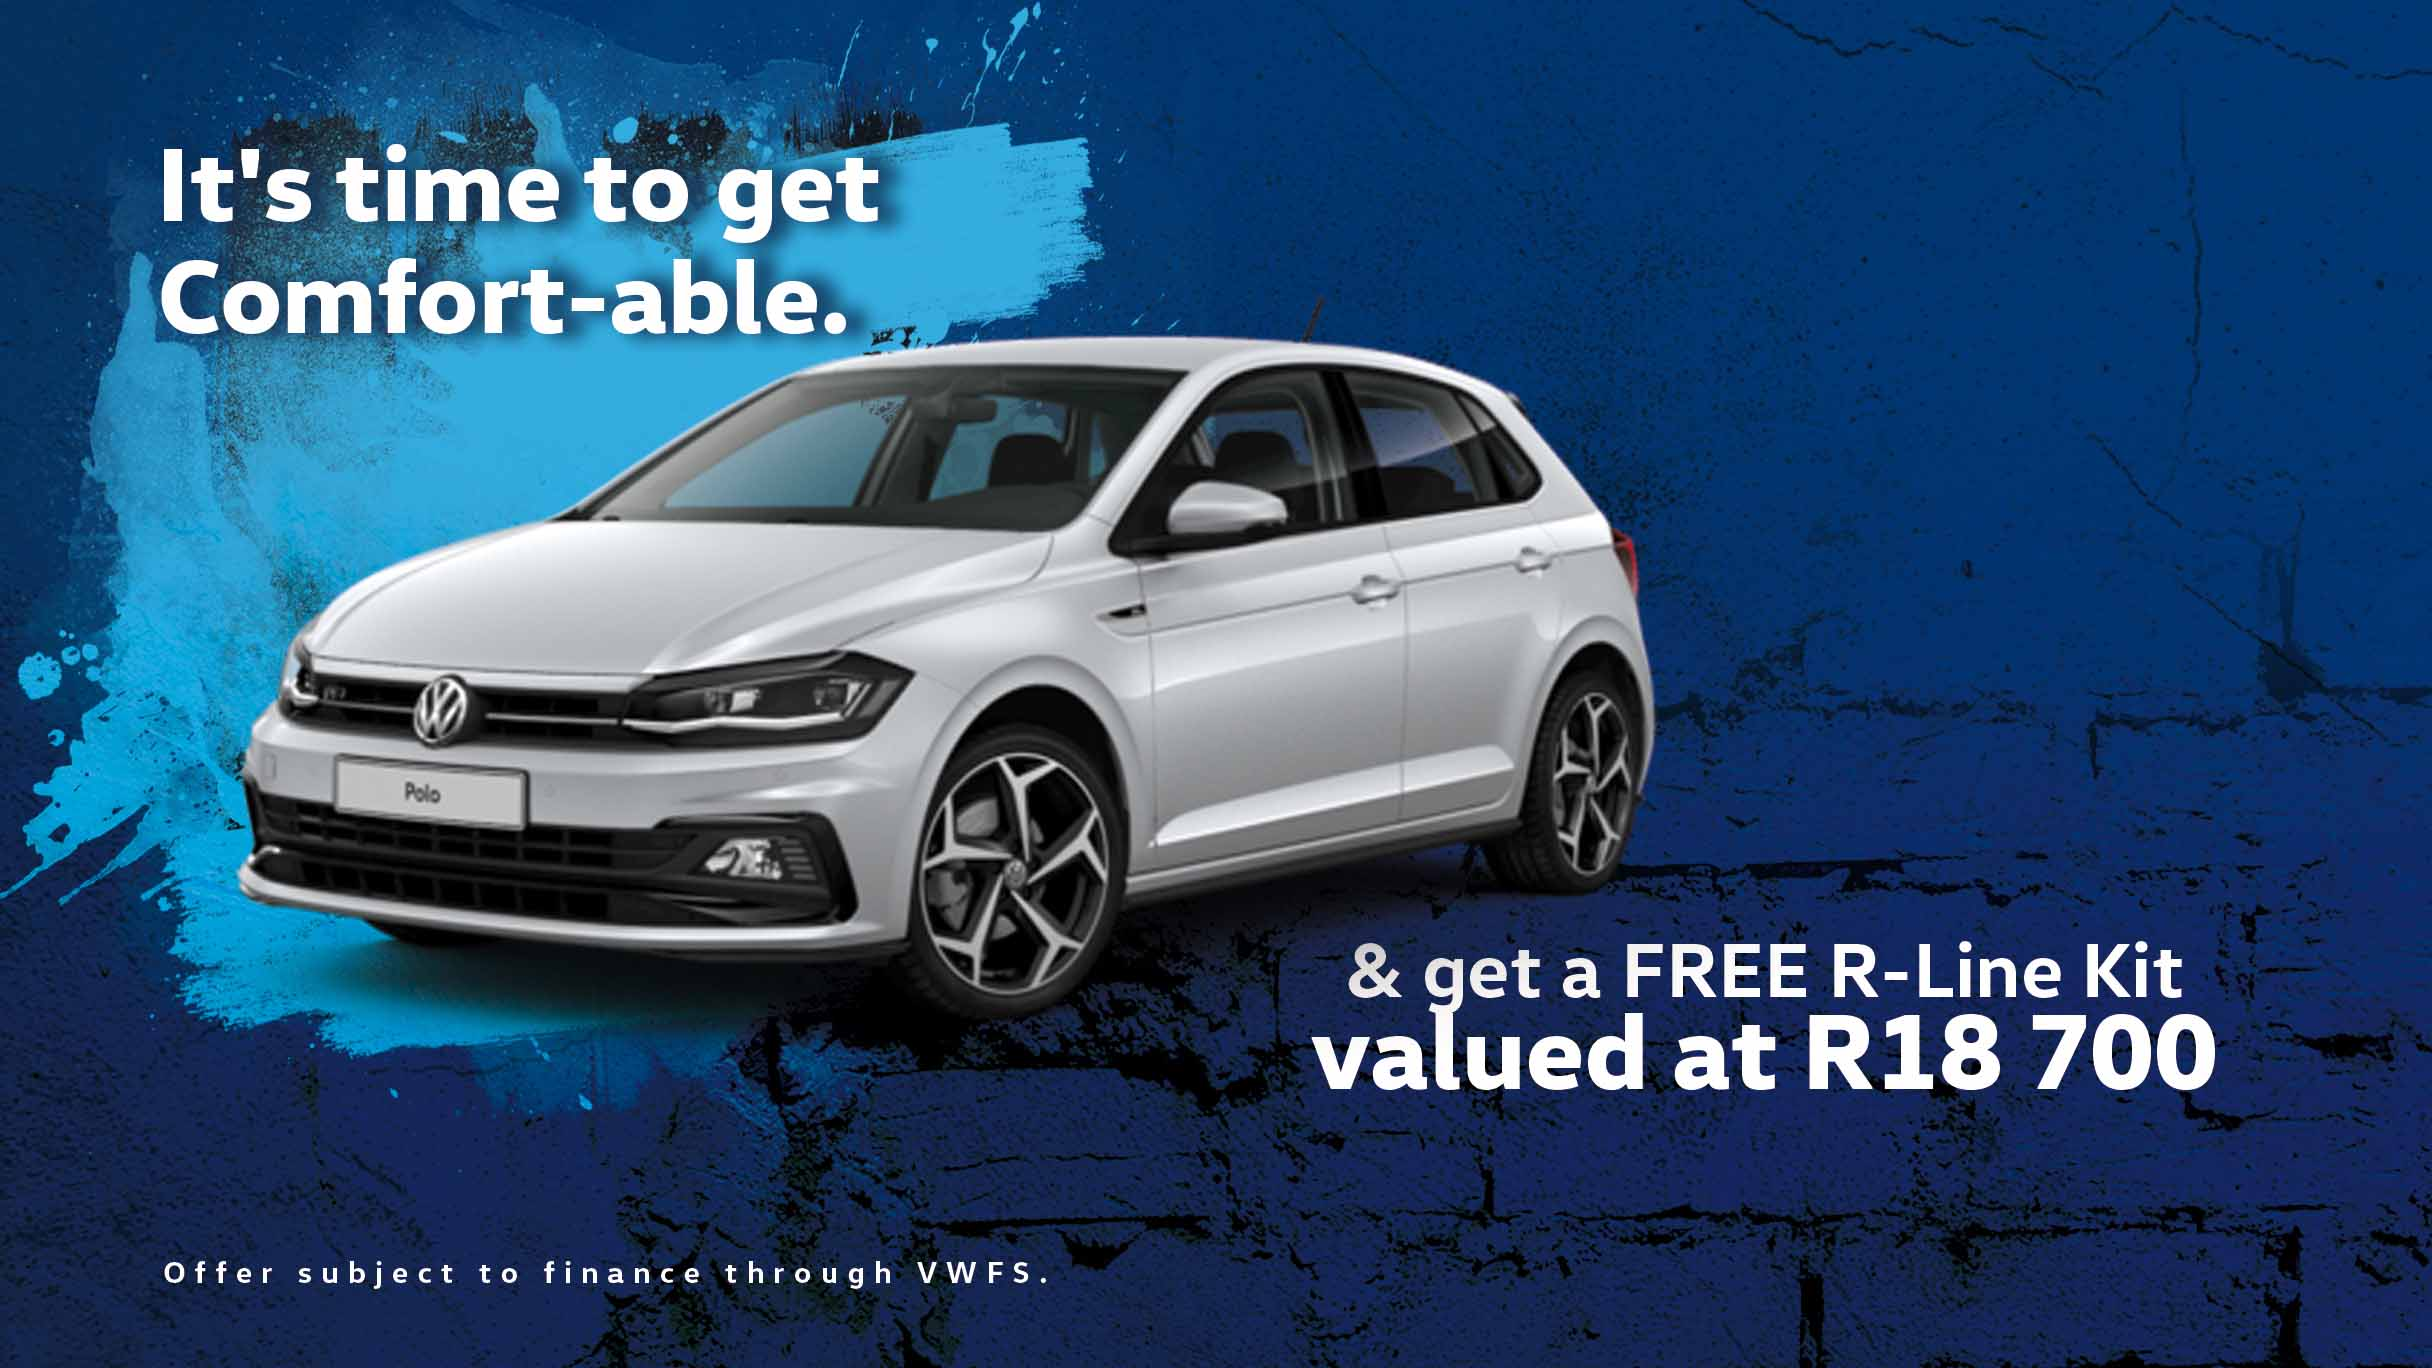 VW Polo offer at Barons Bruma